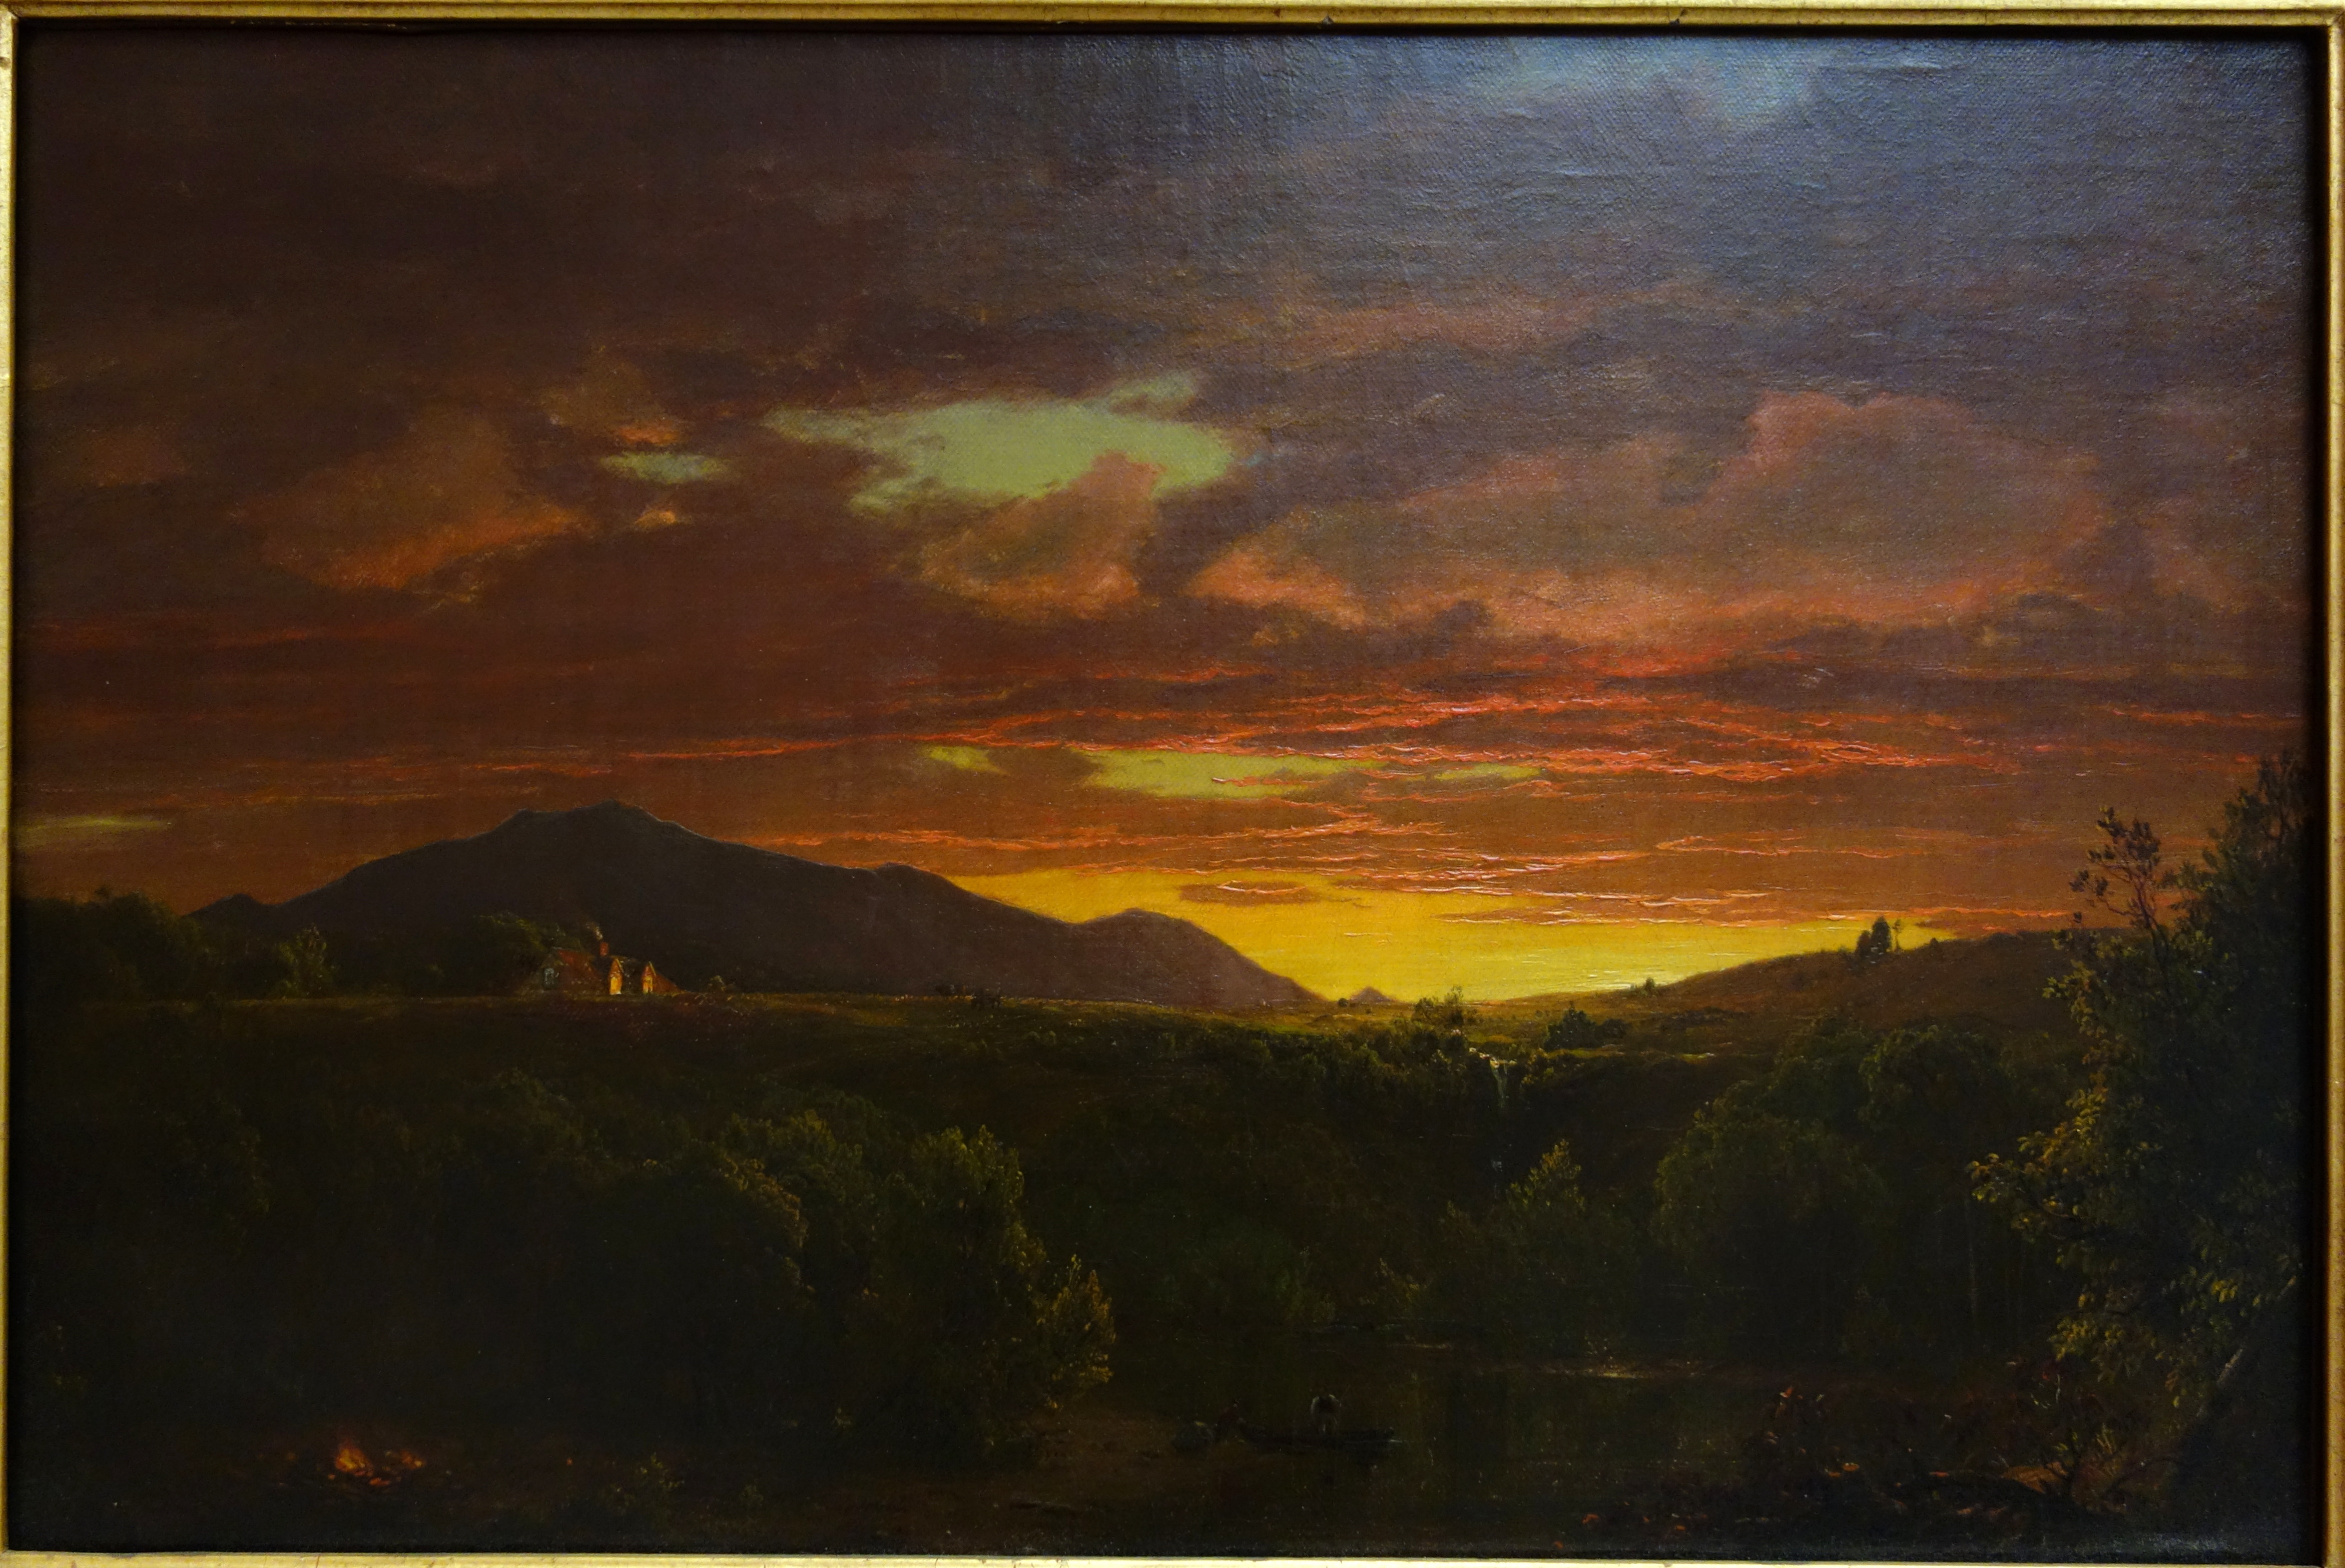 File:Twilight (Sunset) by Frederic E. Church, 1856, oil on canvas - Albany Institute of History and Art - DSC08132.JPG